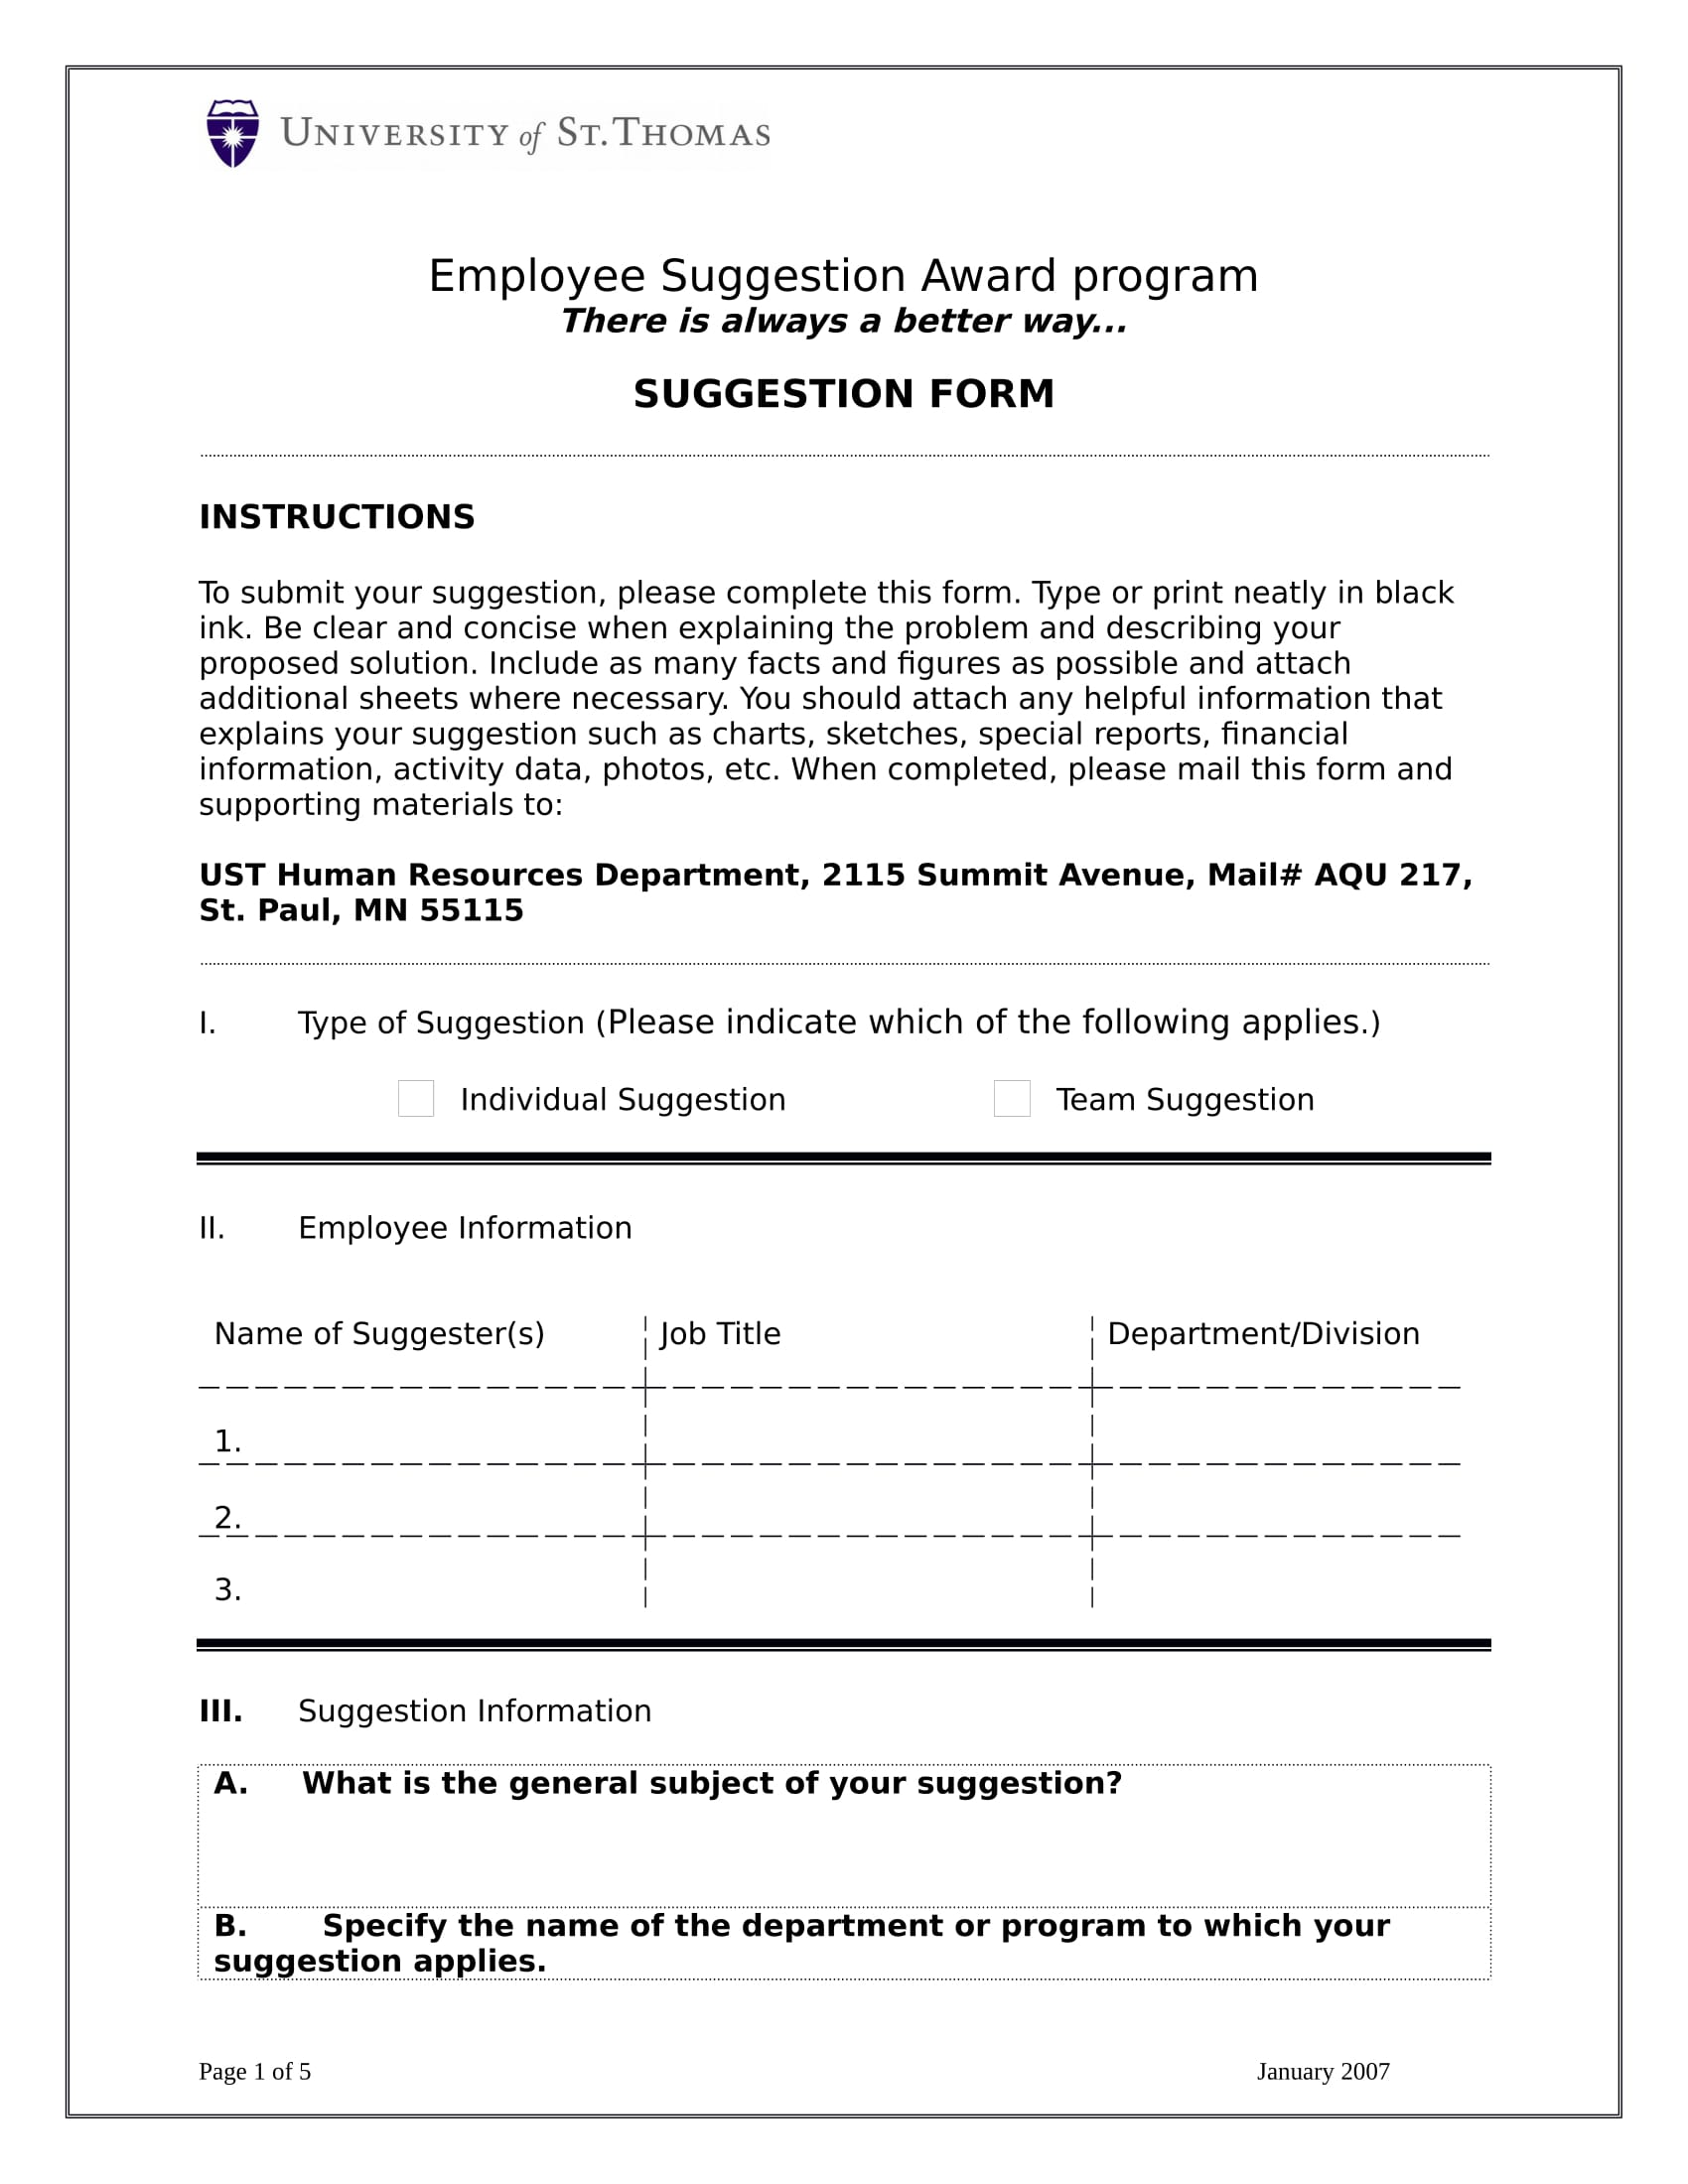 employee suggestion award form 1